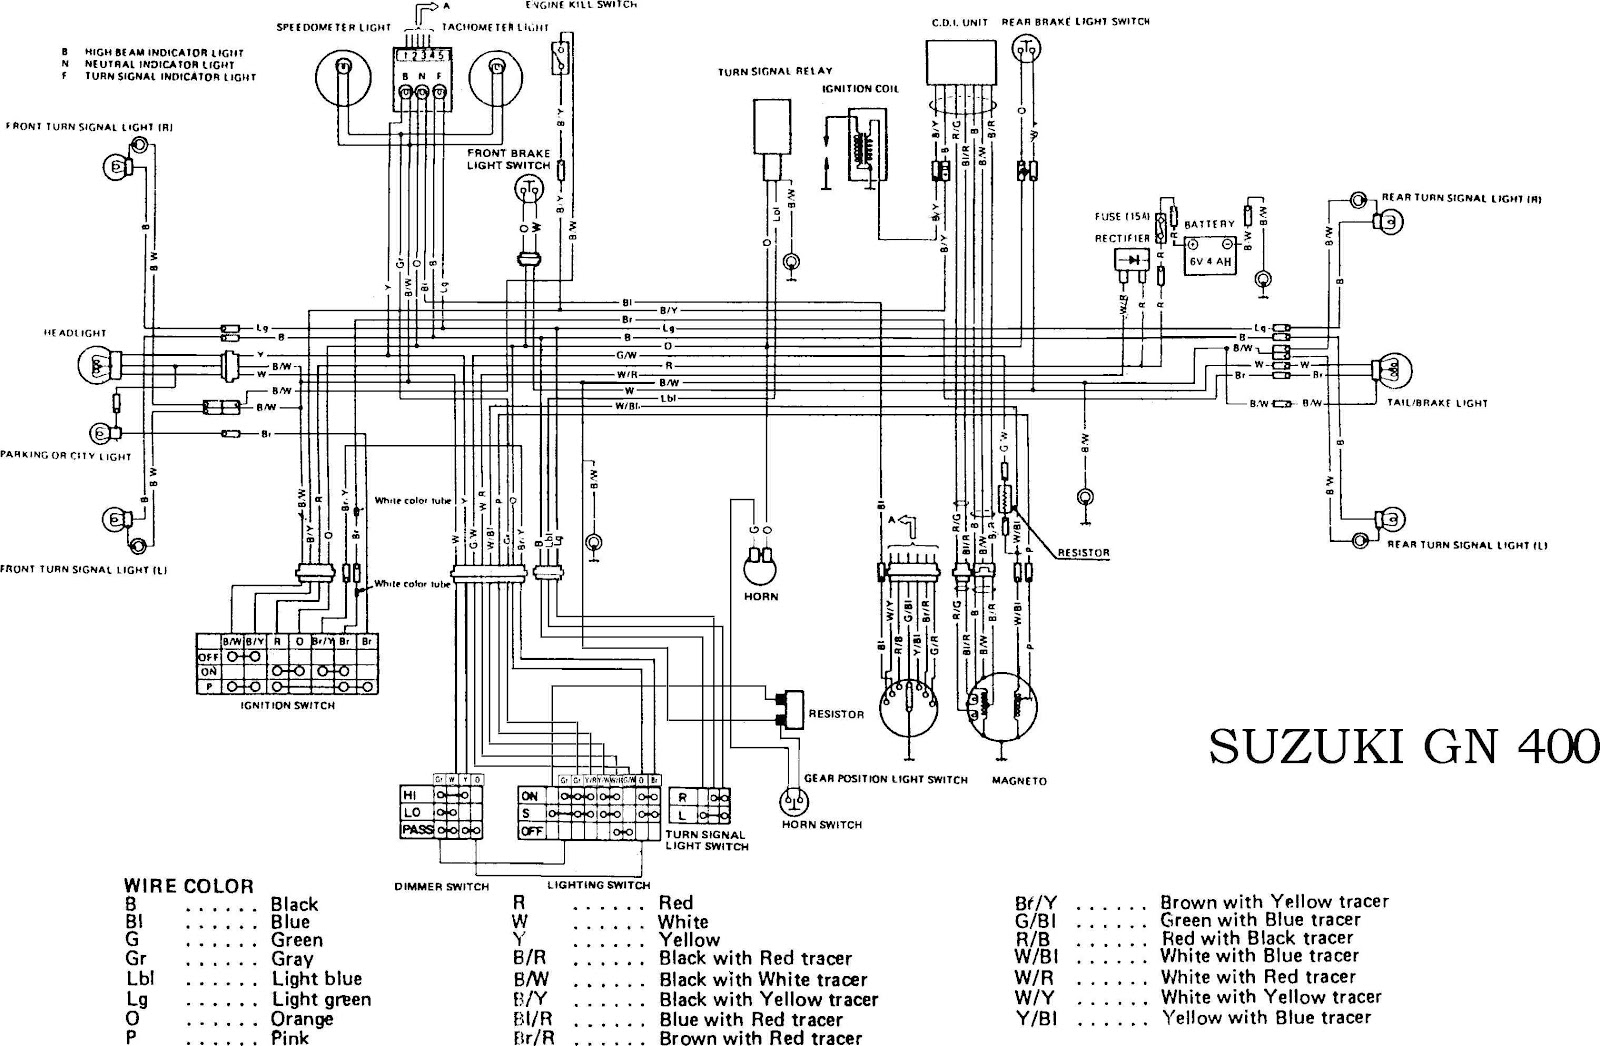 Suzuki Gsx R600 Srad Motorcycle 1998 on 2005 Mazda 6 Radio Wiring Harness Diagram